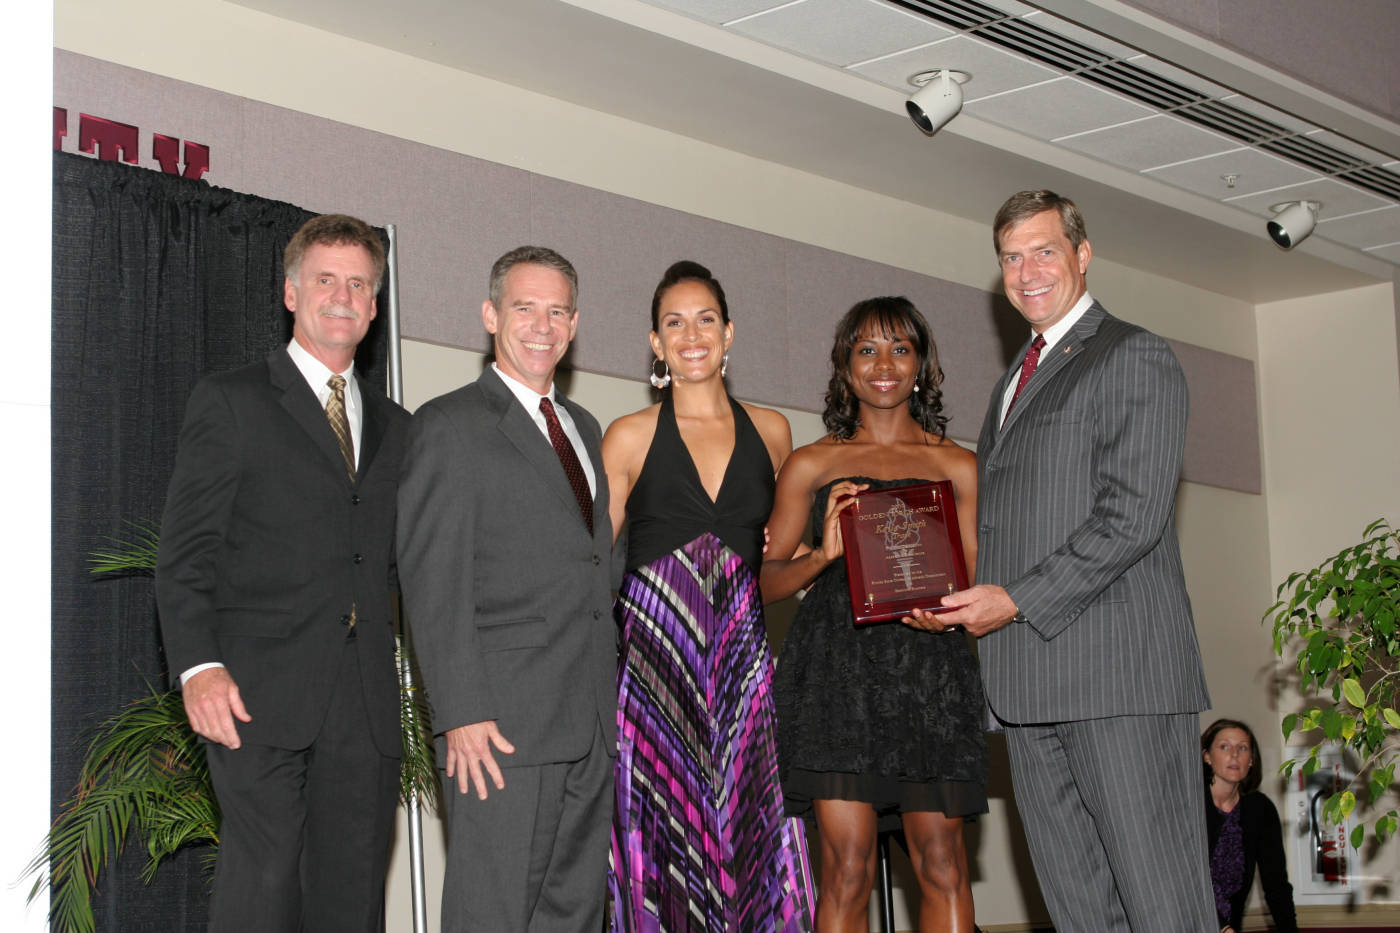 The 19th Annual Golden Torch Awards Gala: